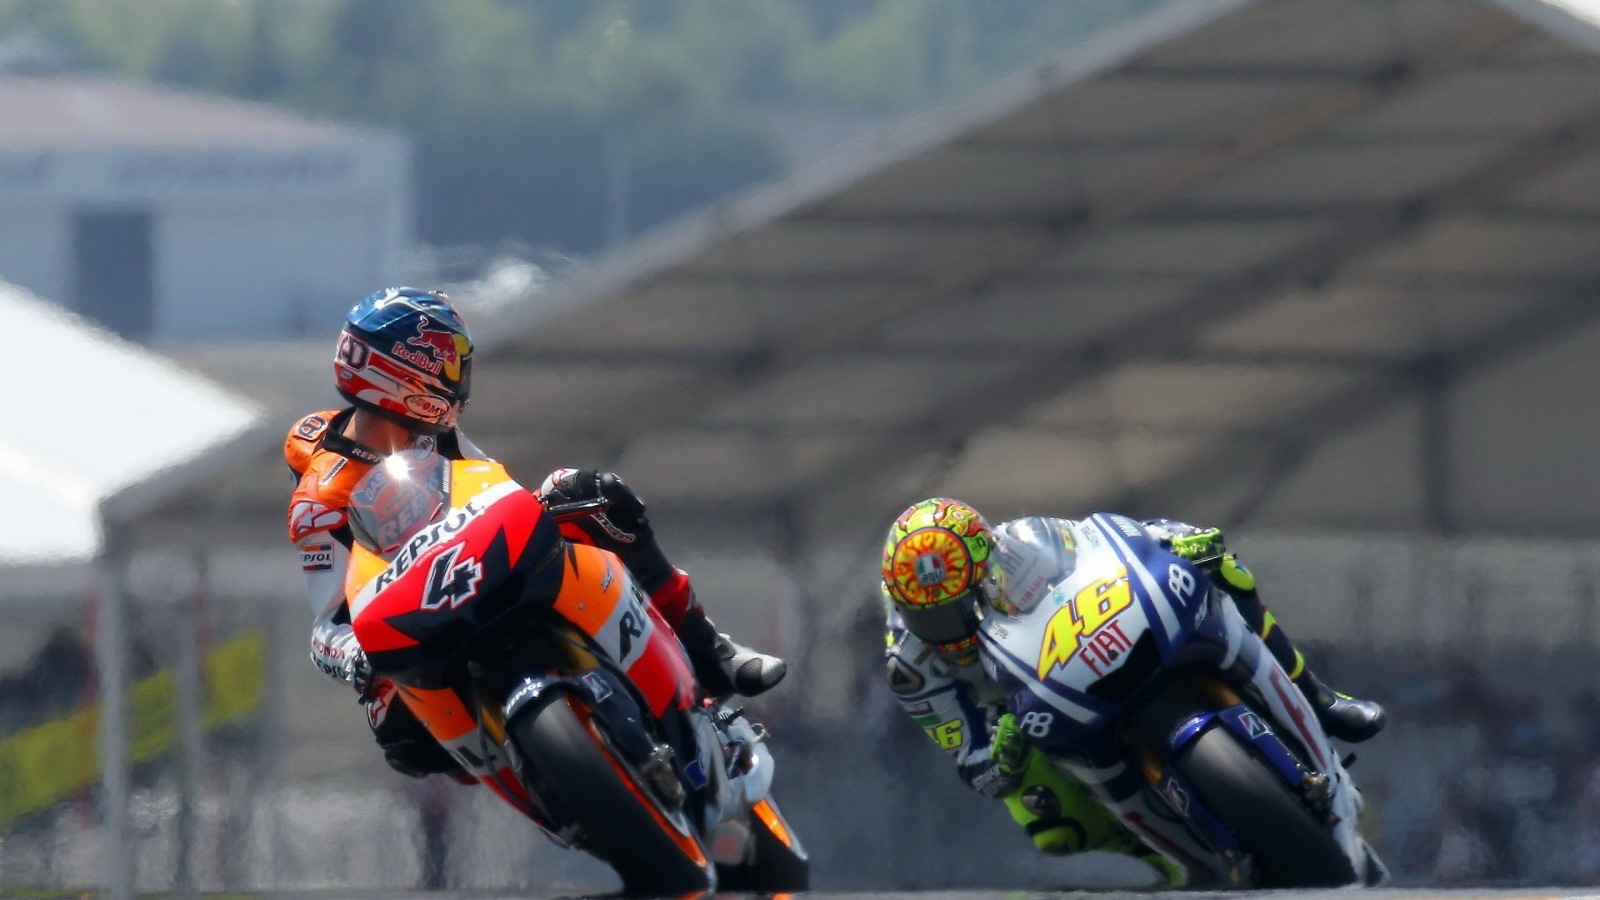 MotoGP Riders for 1600 x 900 HDTV resolution